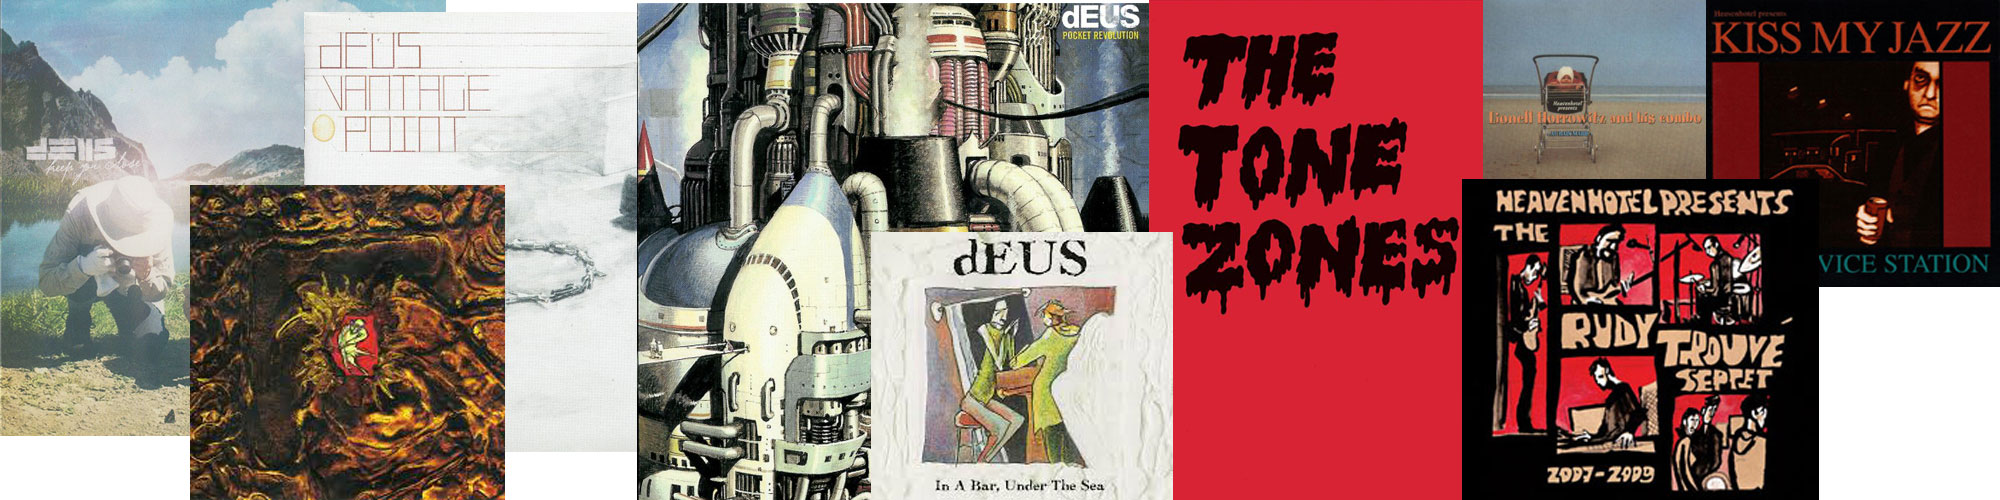 dEUS vinyl re-issues and Heaven Hotel re-stock